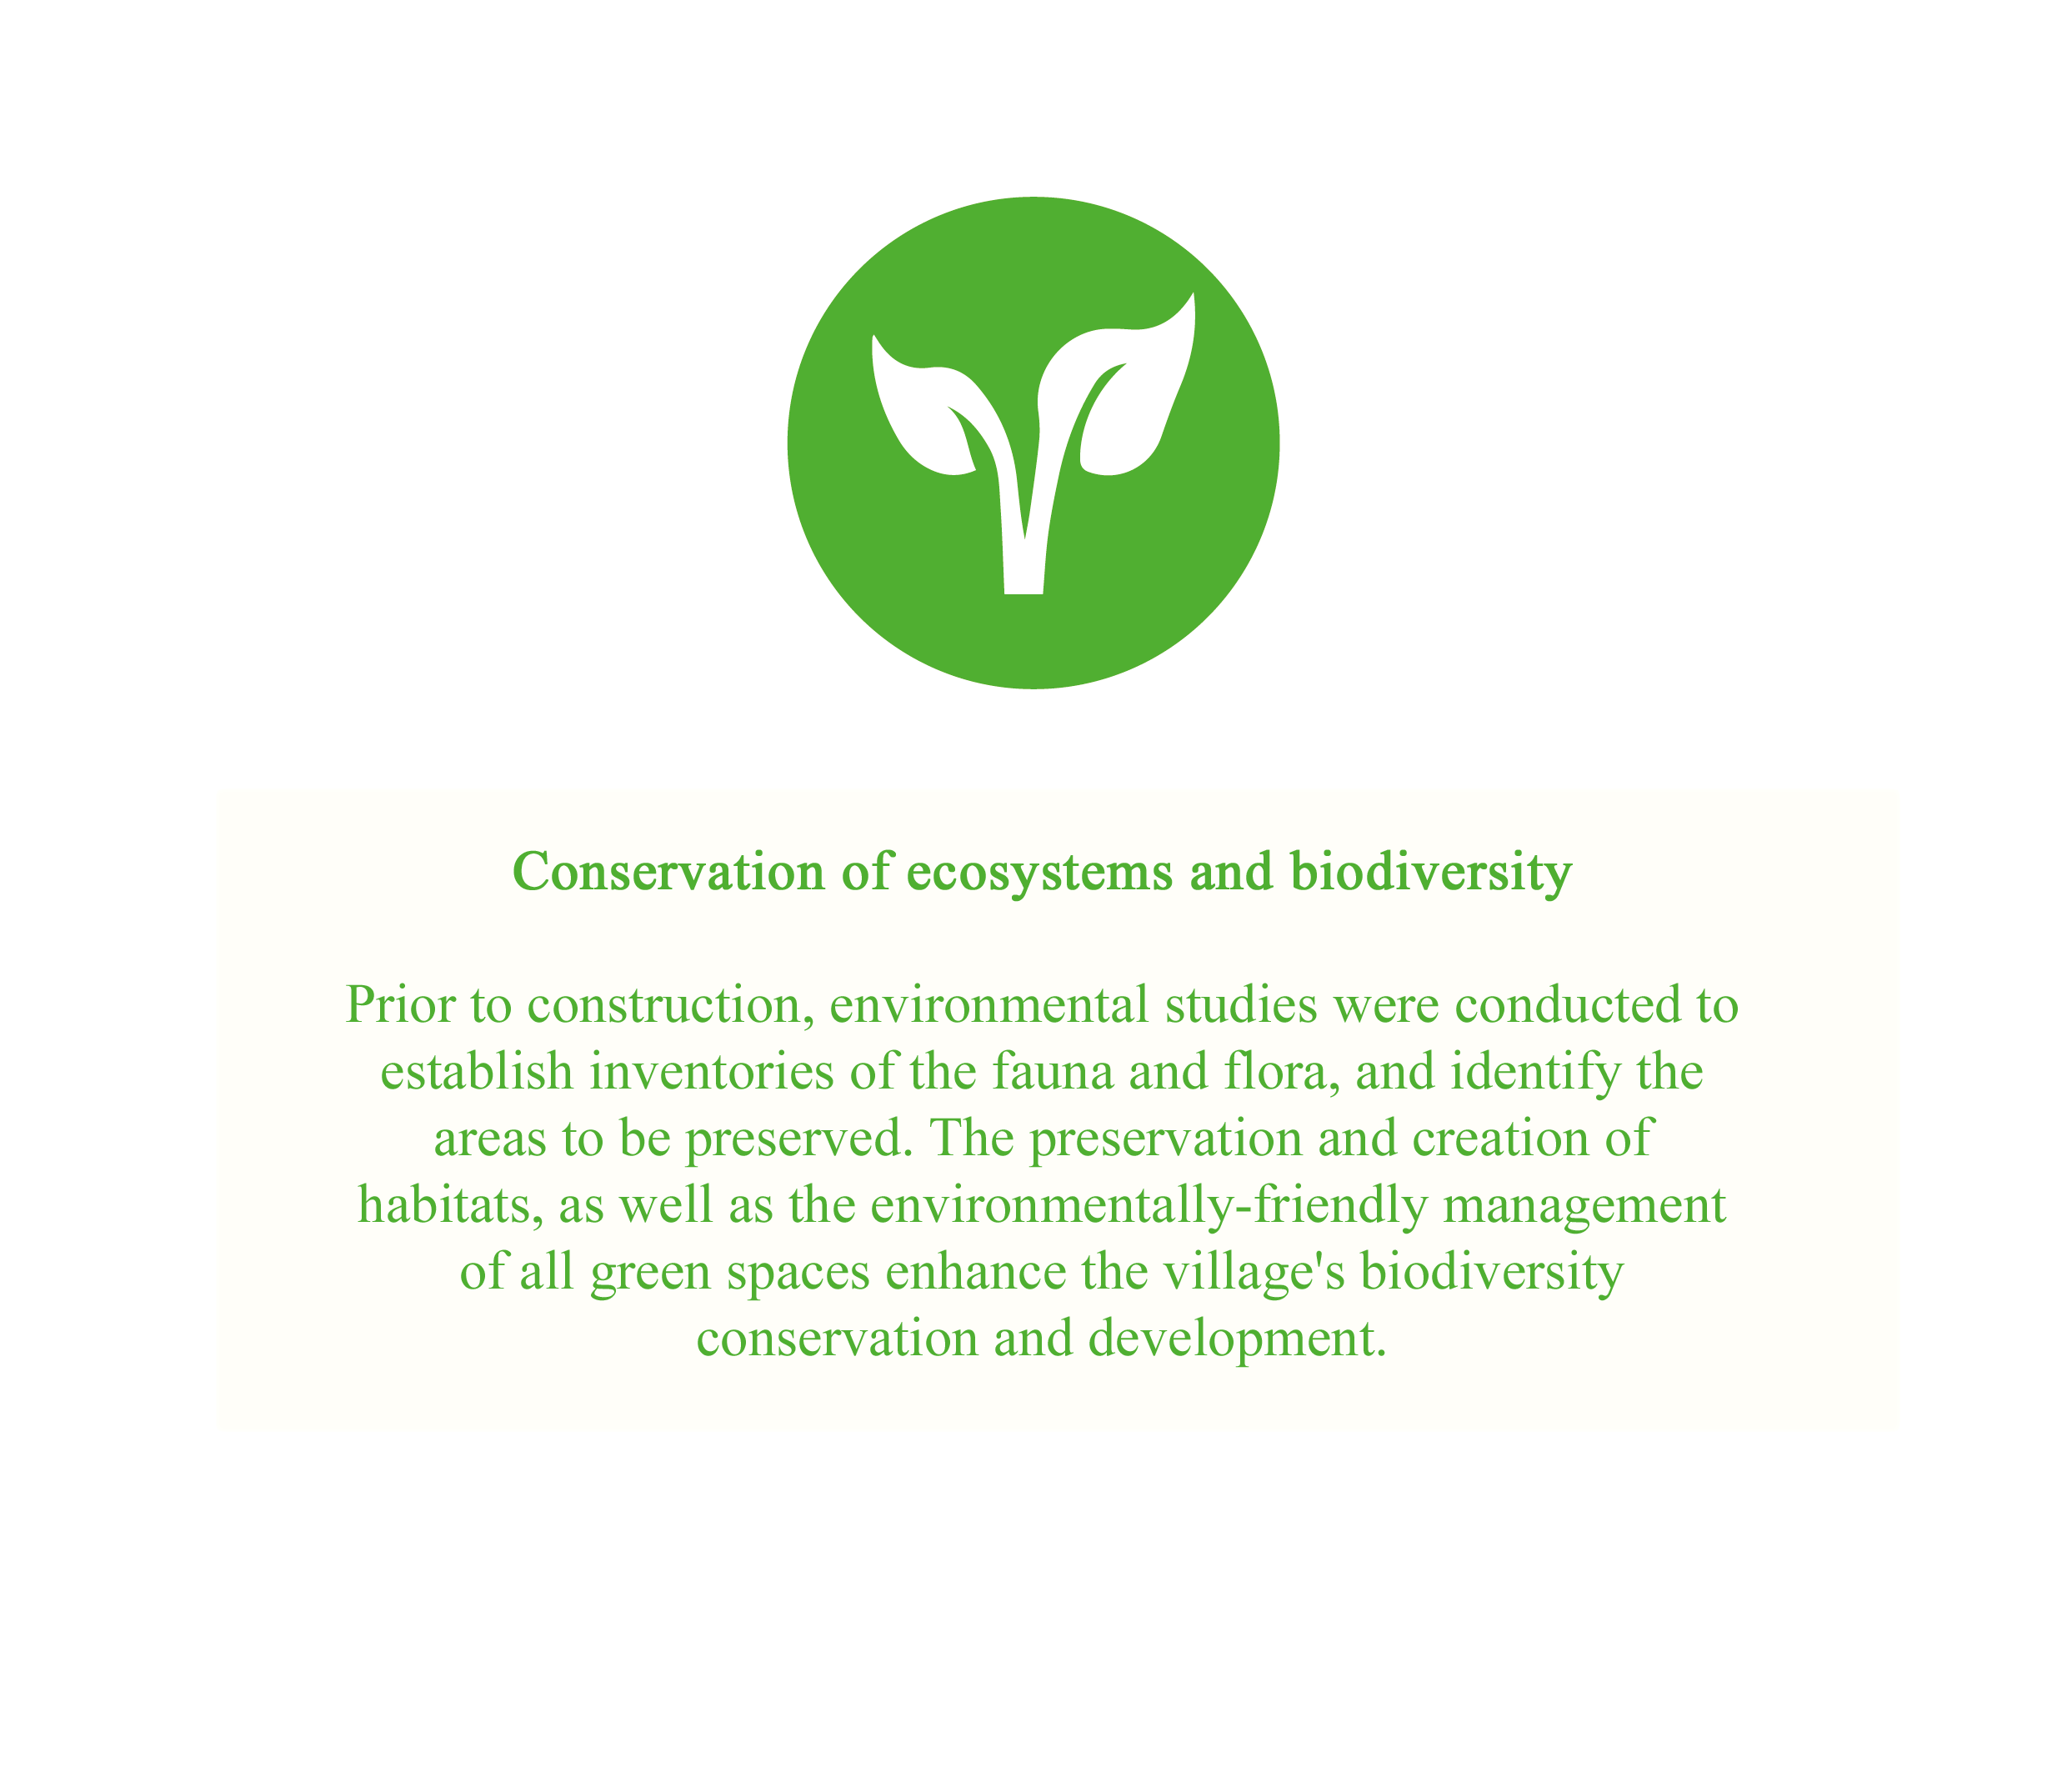 Conservation of ecosystems and biodiversity